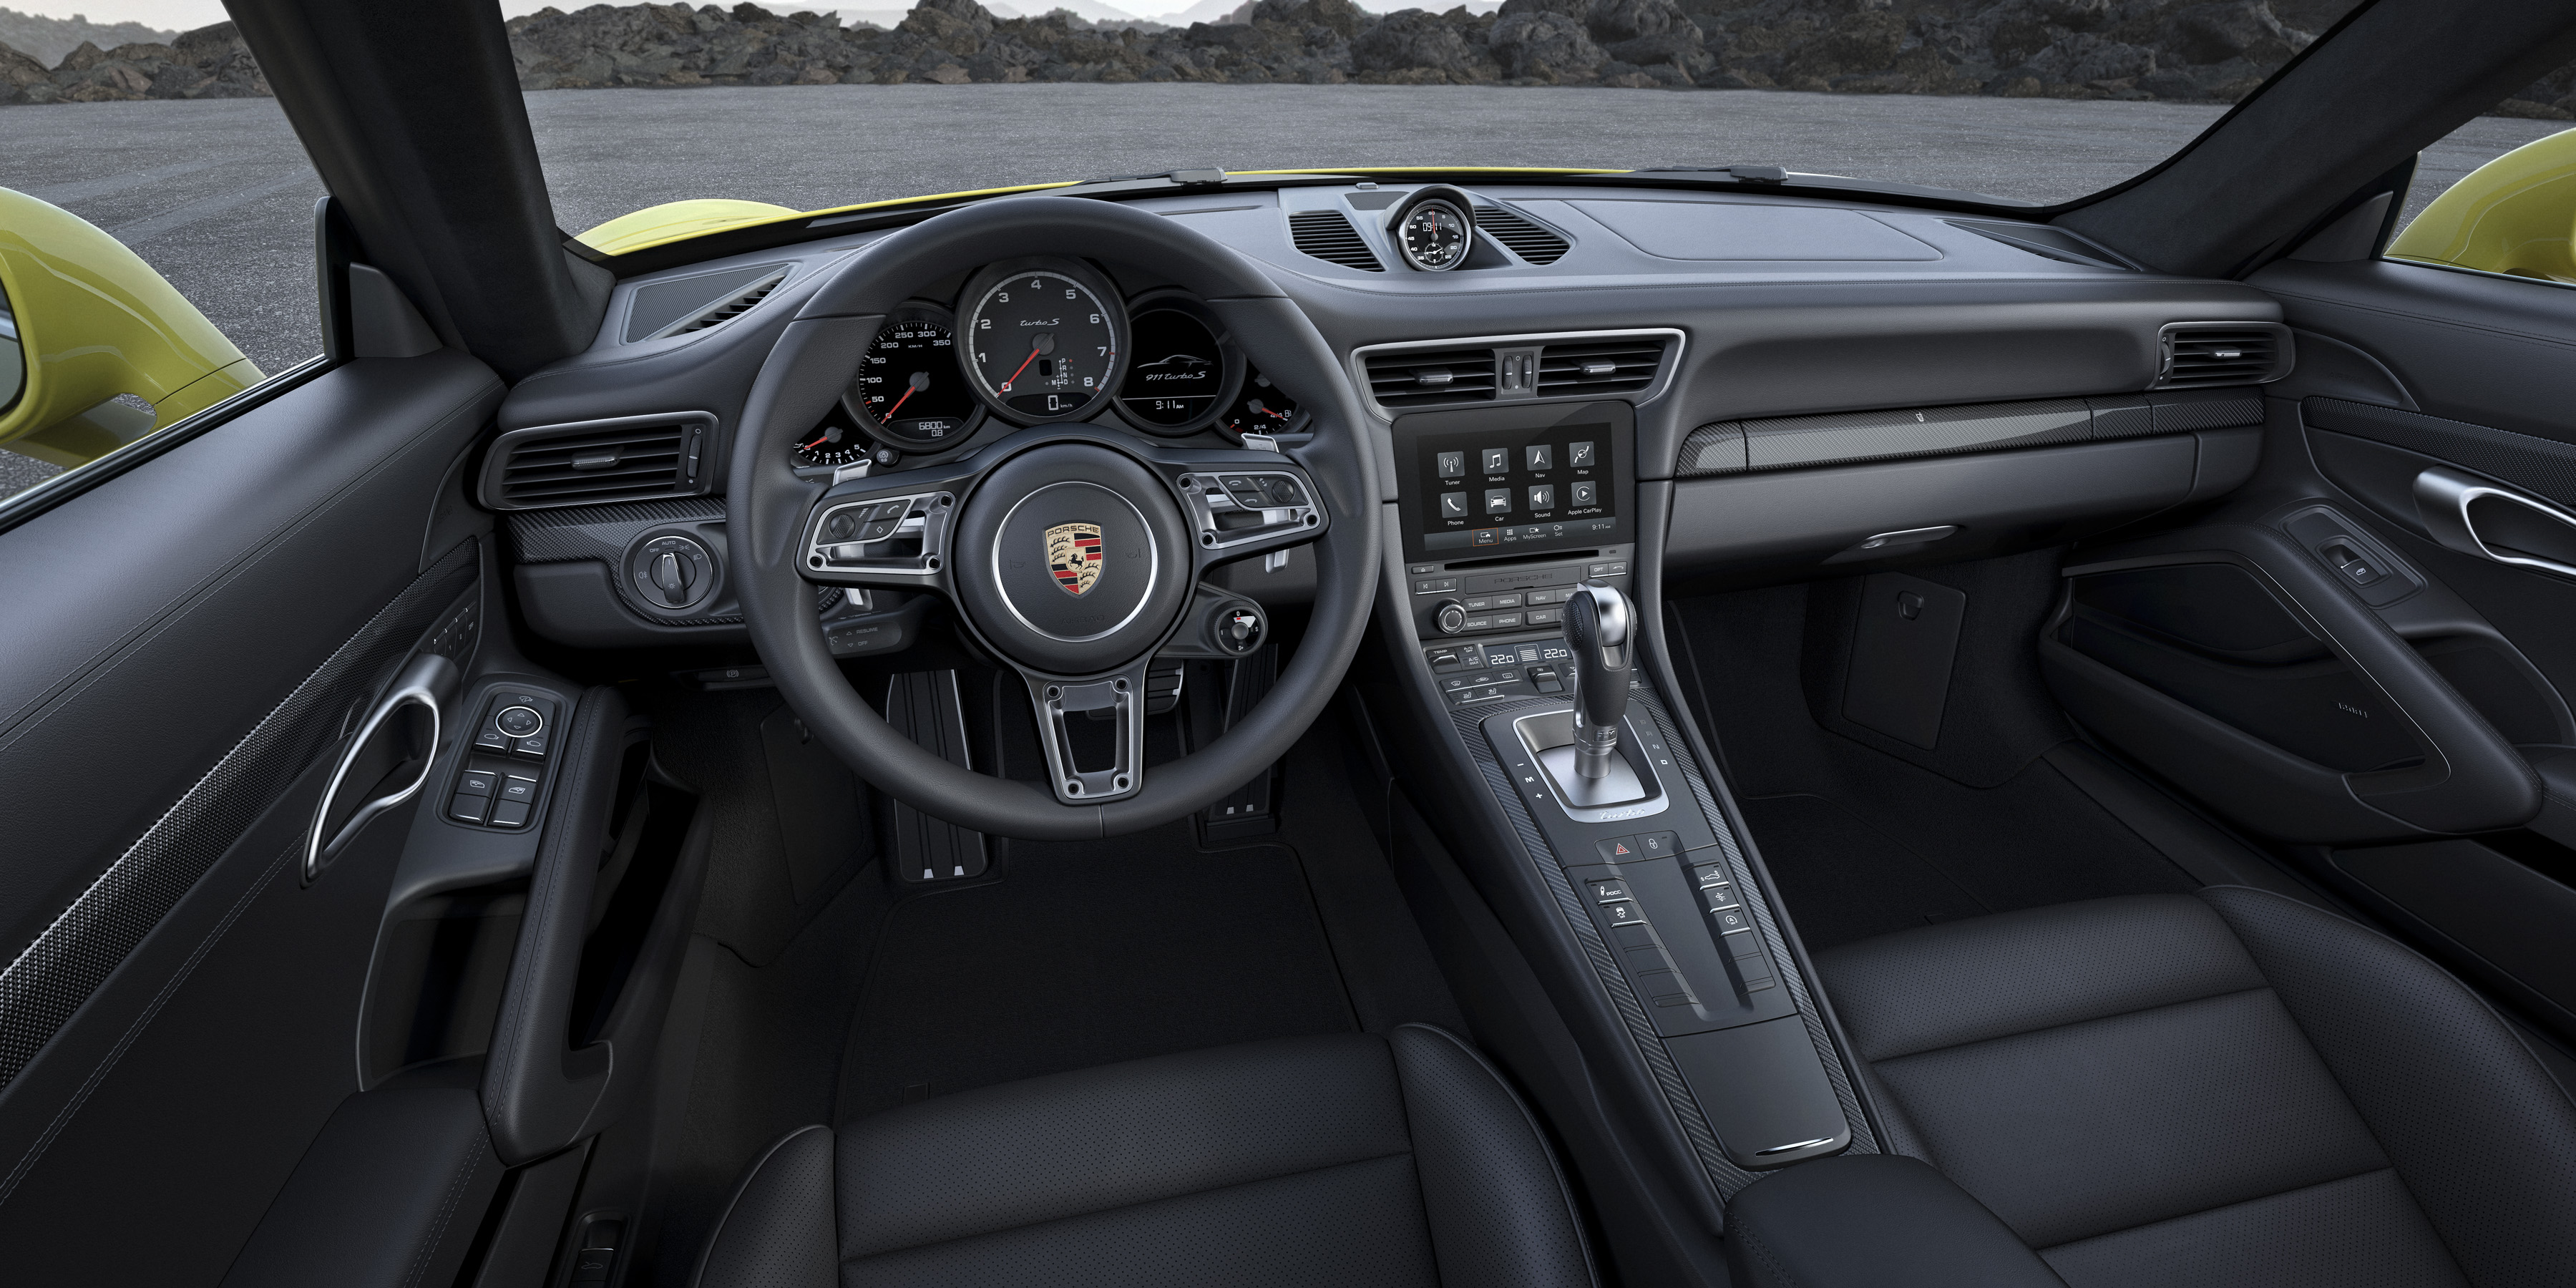 New Porsche 911 Turbo And Turbo S To Make World Debut At